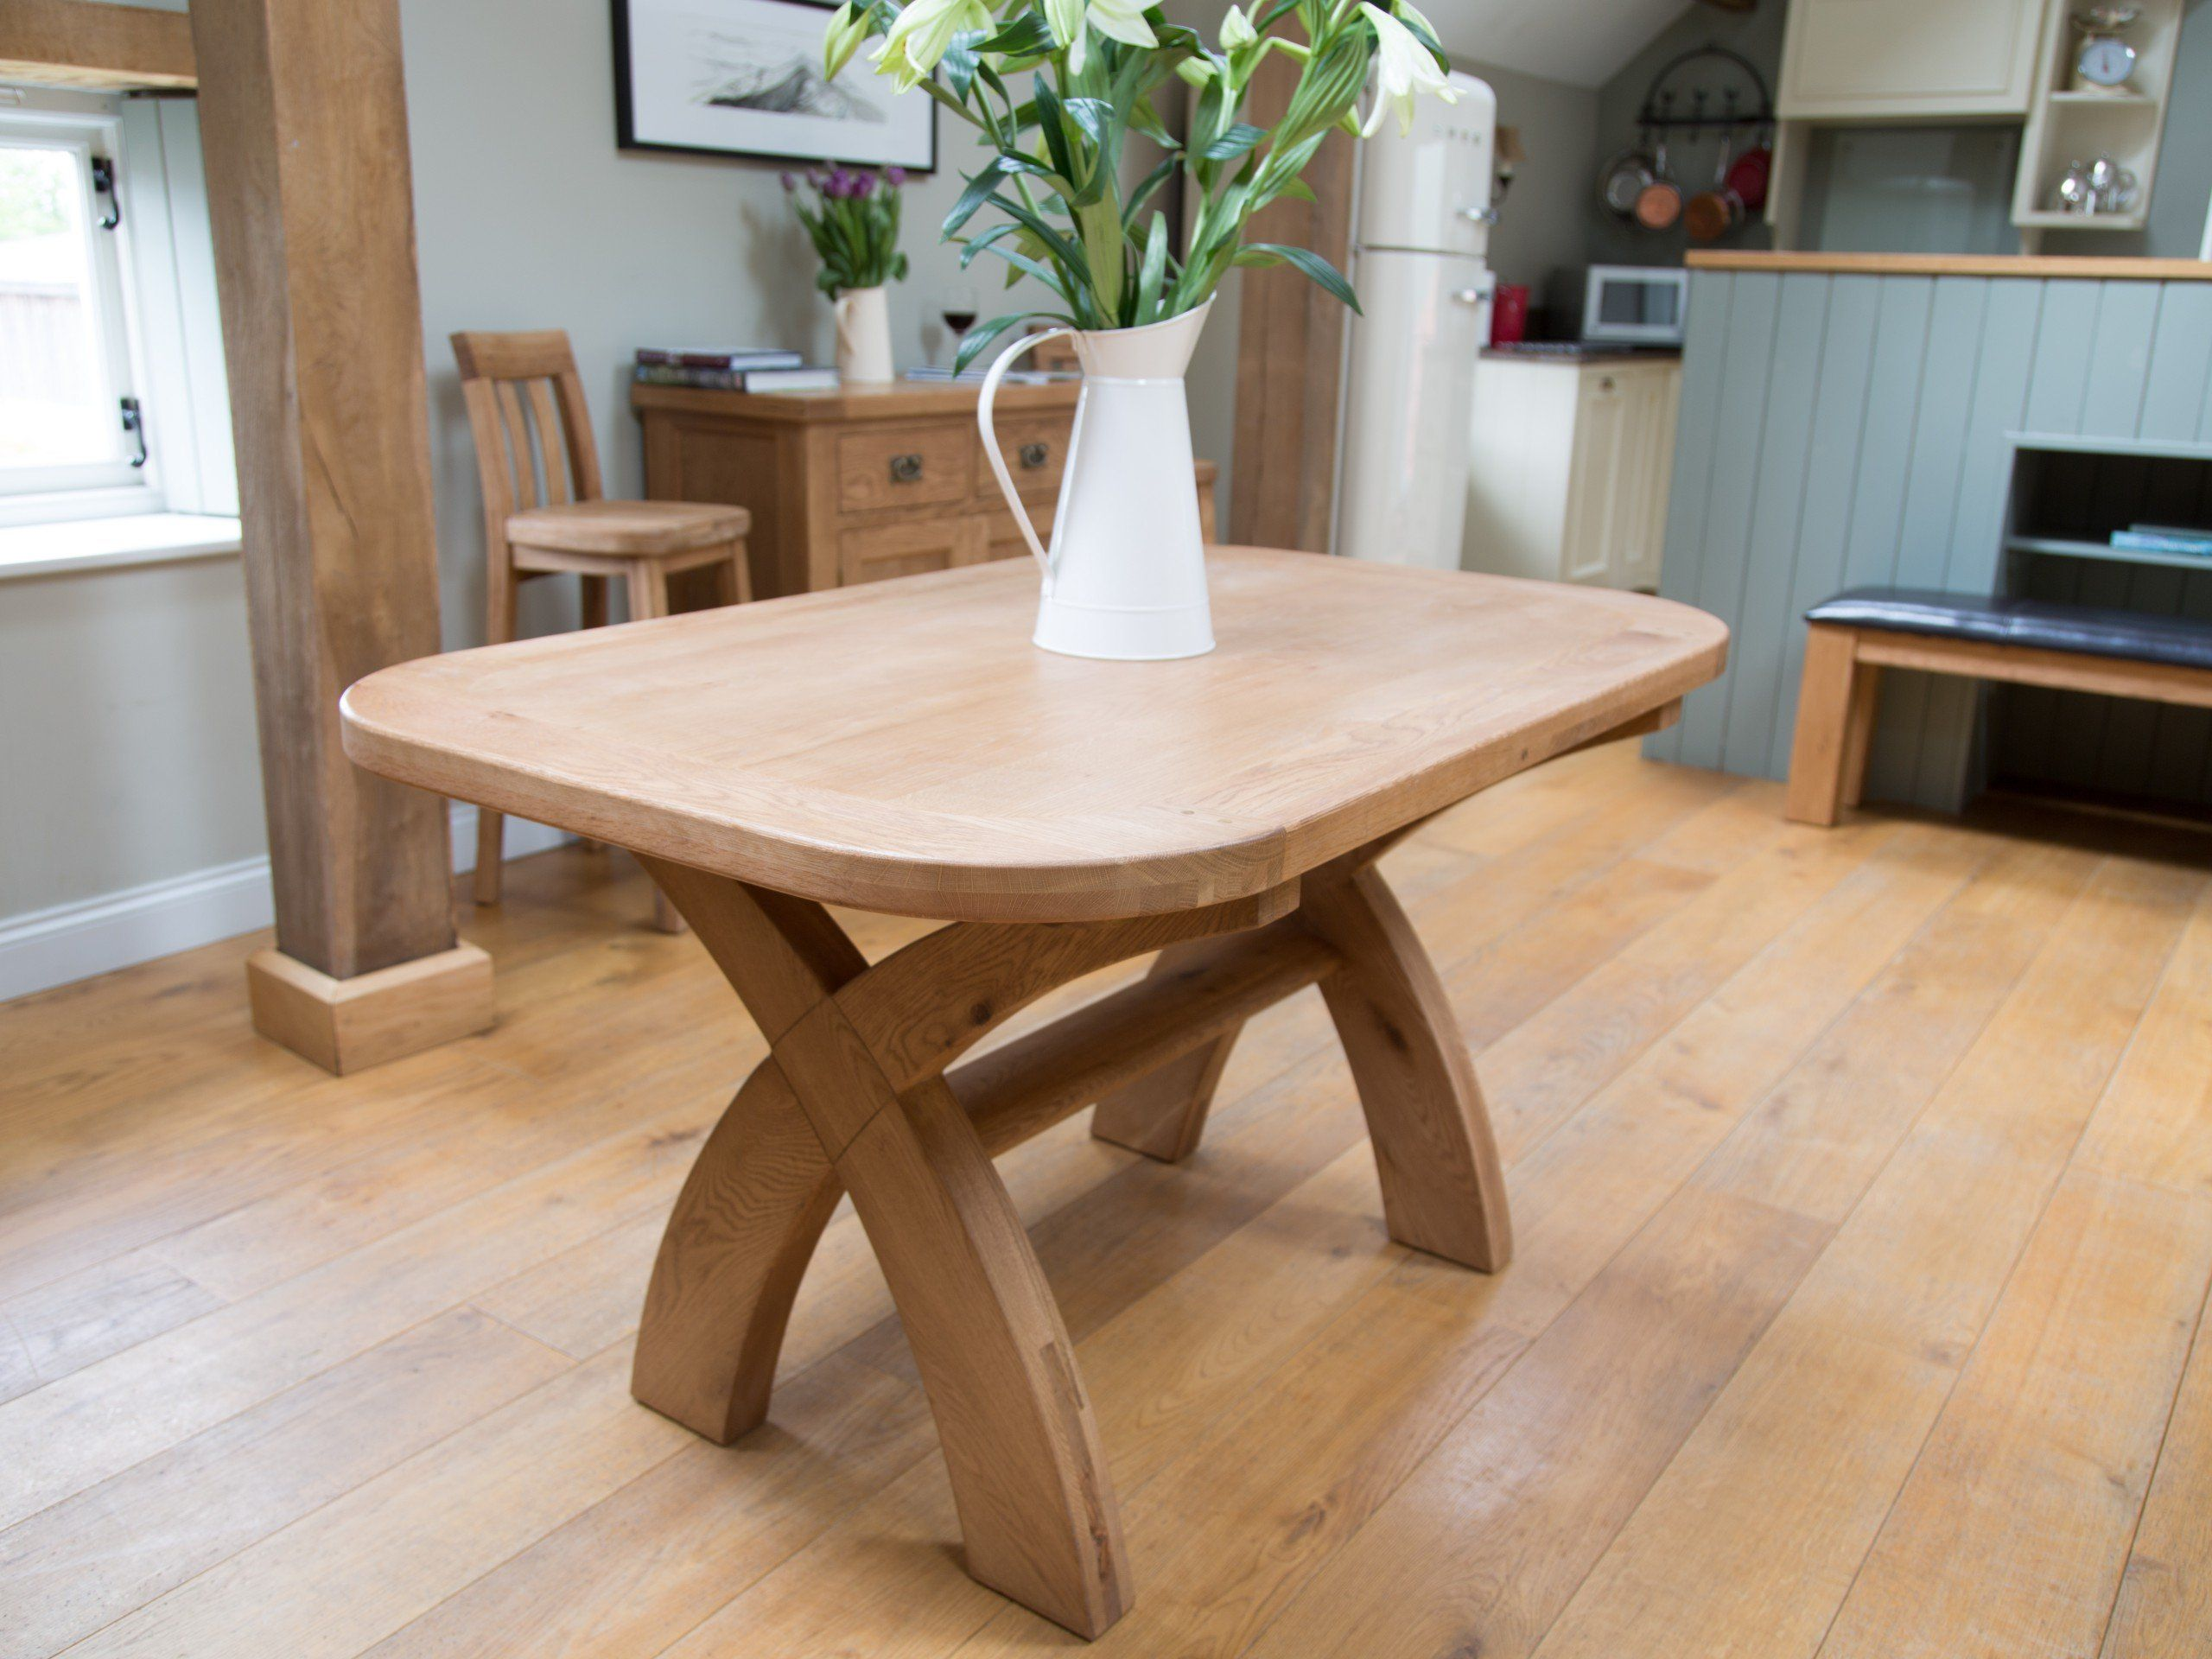 Country Oak 1 4m cross legged dining table with oval corners Seats